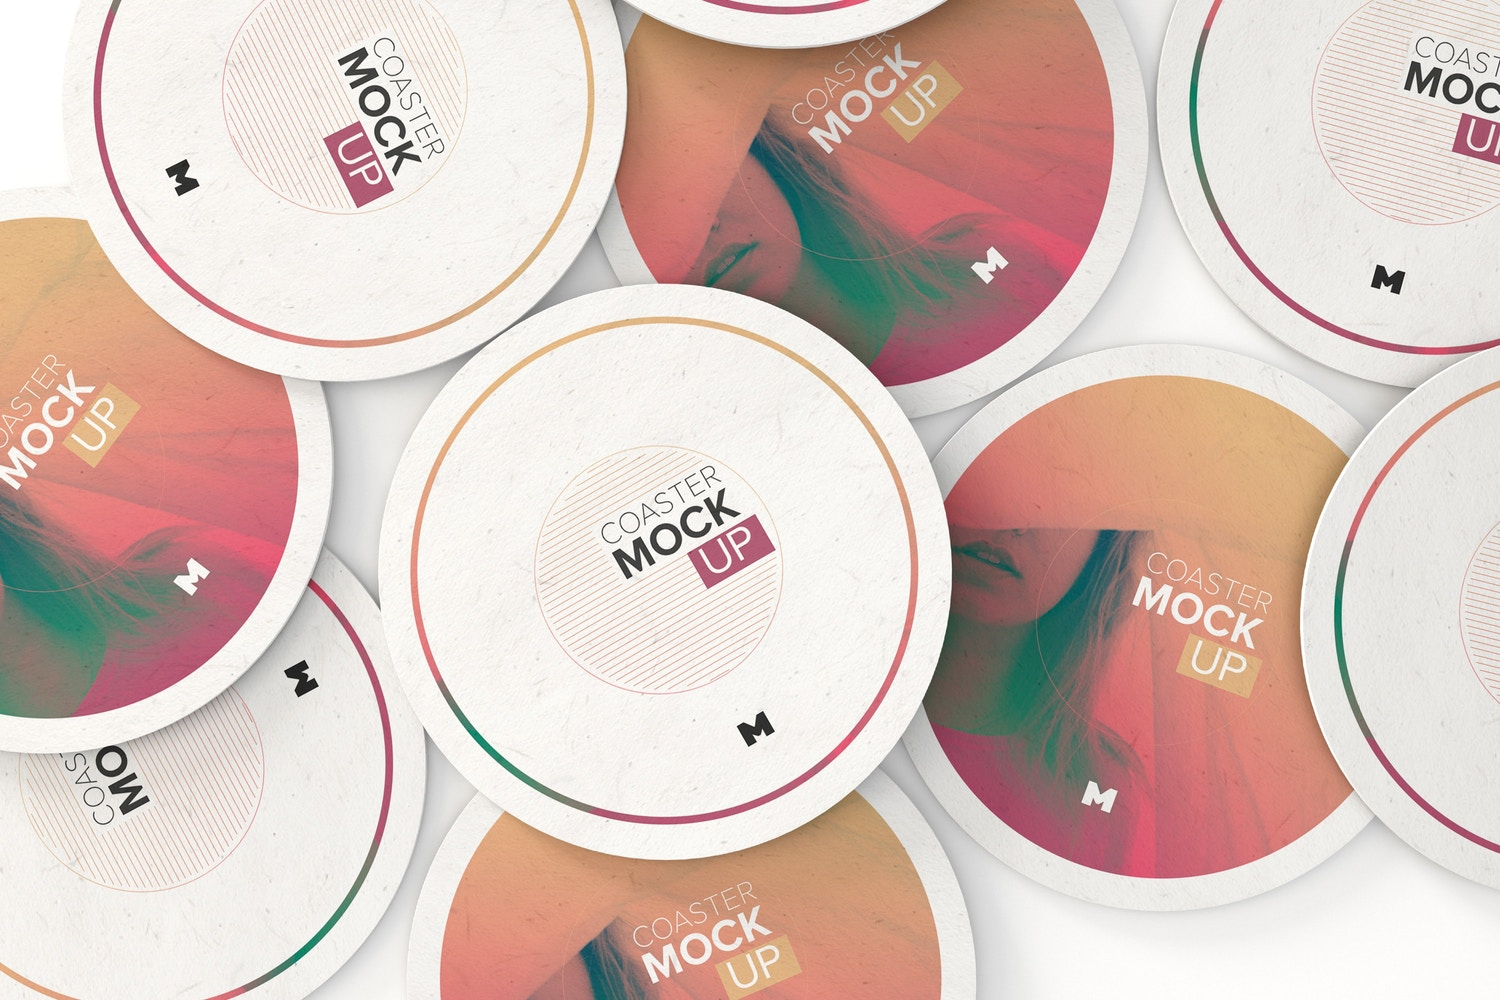 Round Coaster Mockup 01 by Original Mockups on Original Mockups